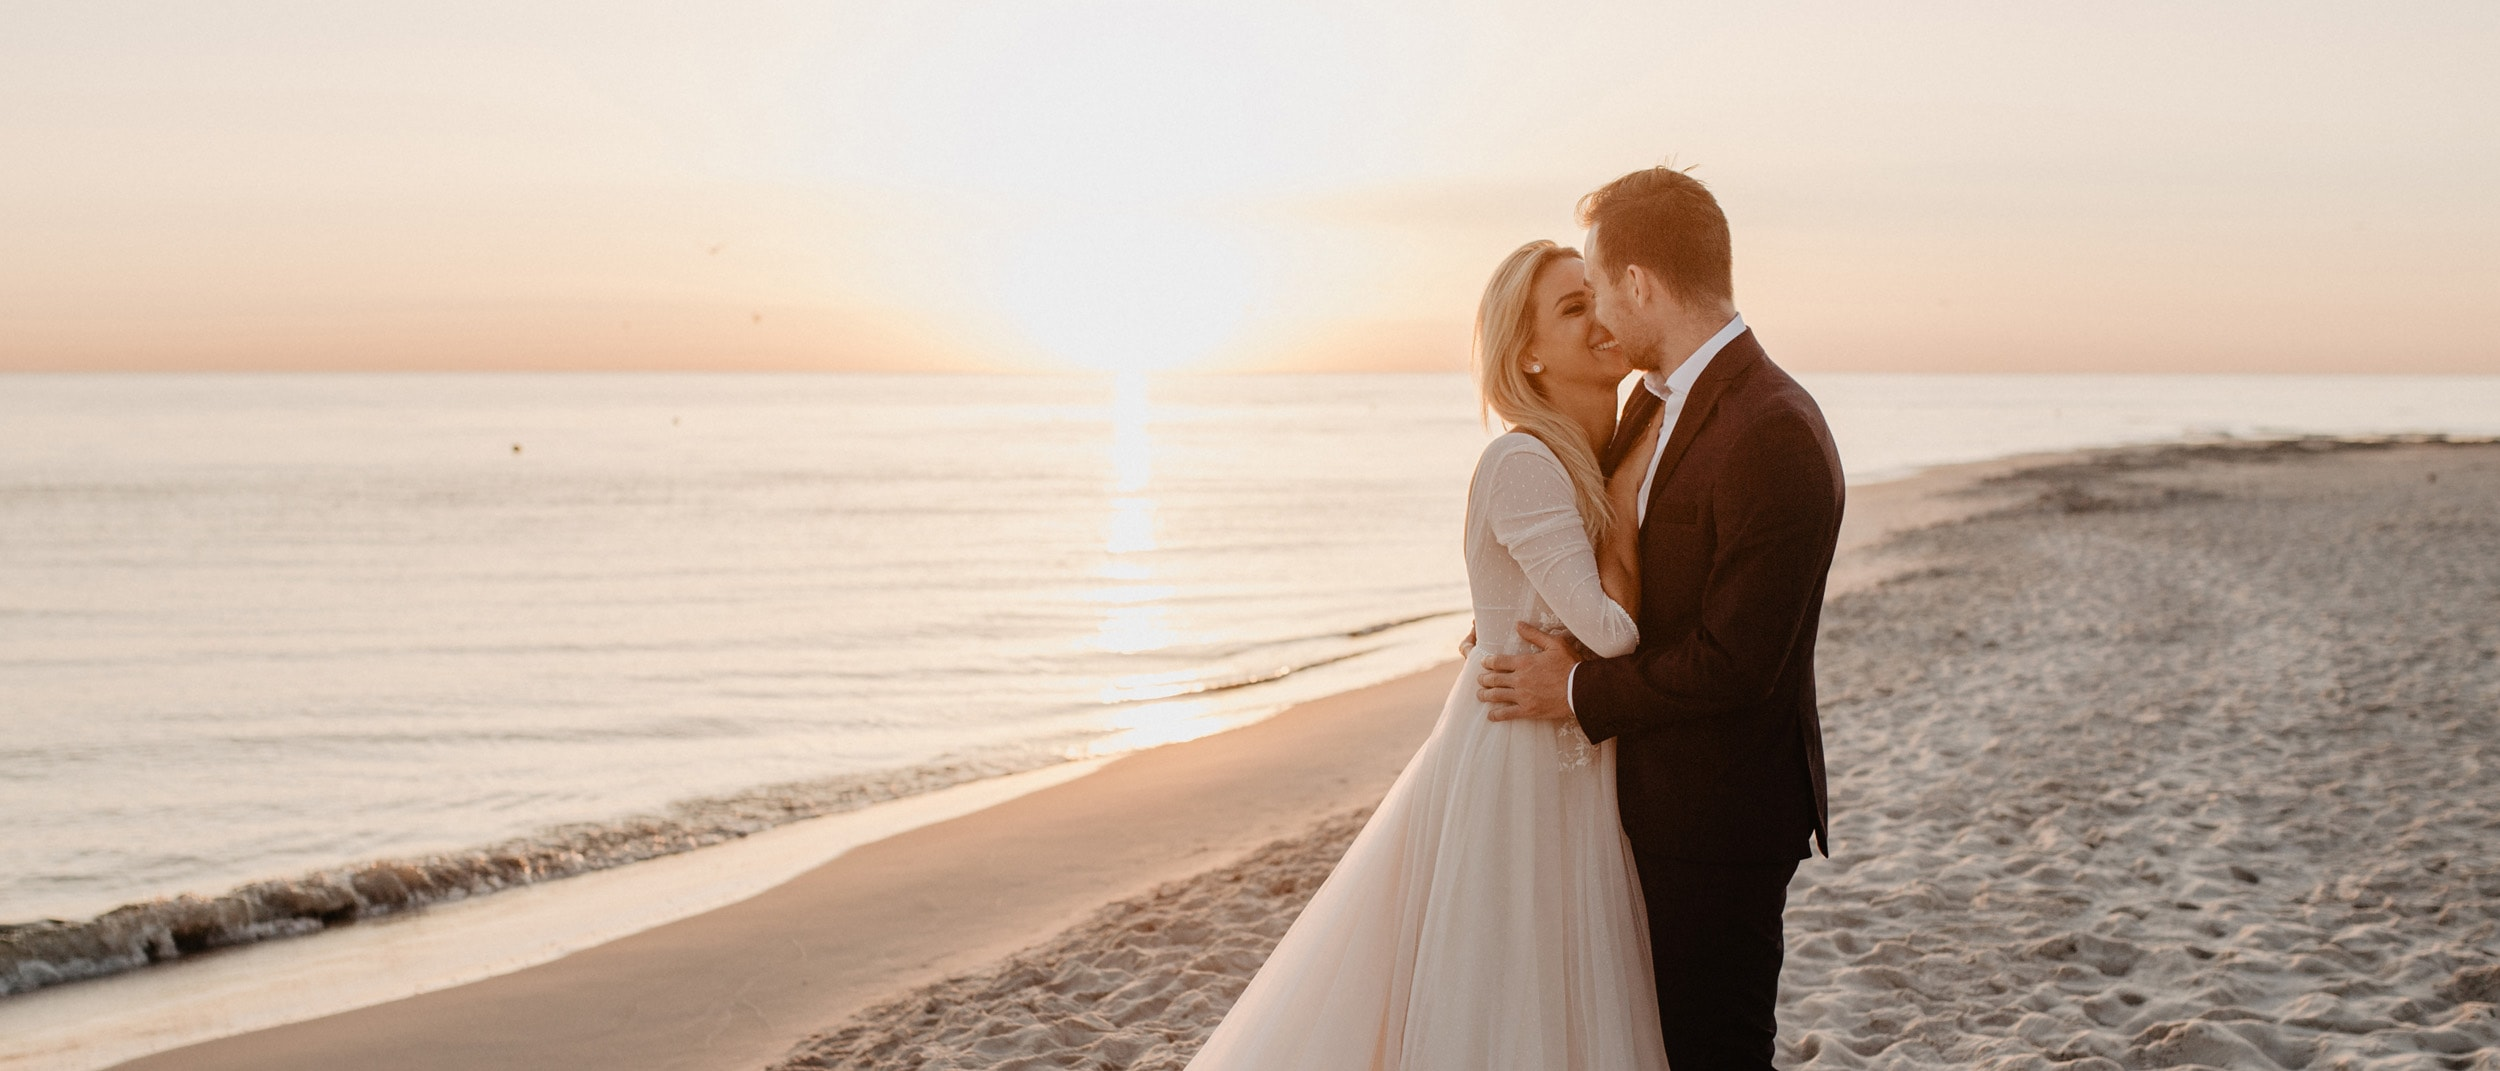 ANETA & MICHAL CINEMATIC WEDDING FILM - This time, not only about wedding, but also about family. Meet Aneta, Michał and their little wonderful Kacper, who makes everyone smile and makes such sincere emotions that it is difficult to describe in words.